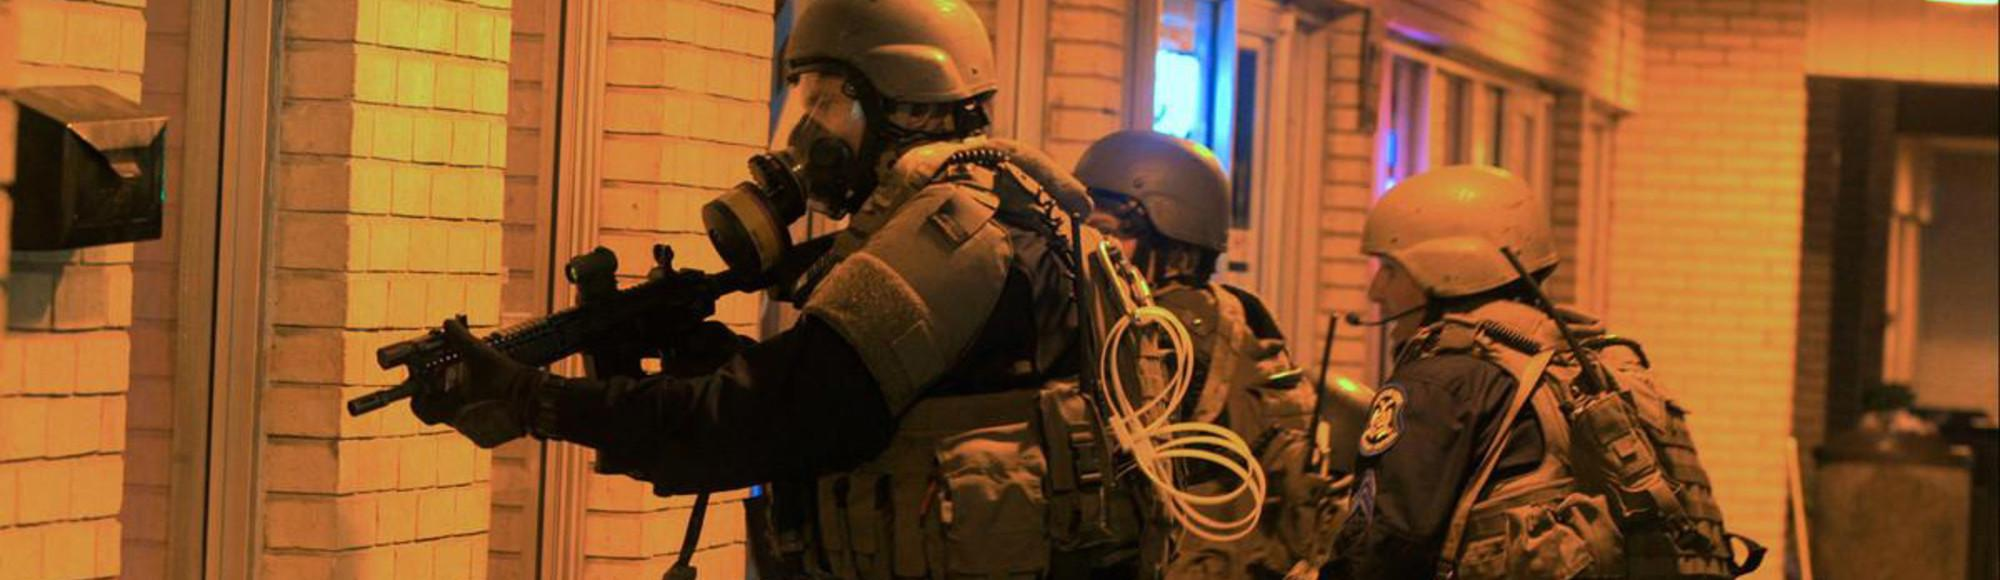 Inside America's Militarized Police Force